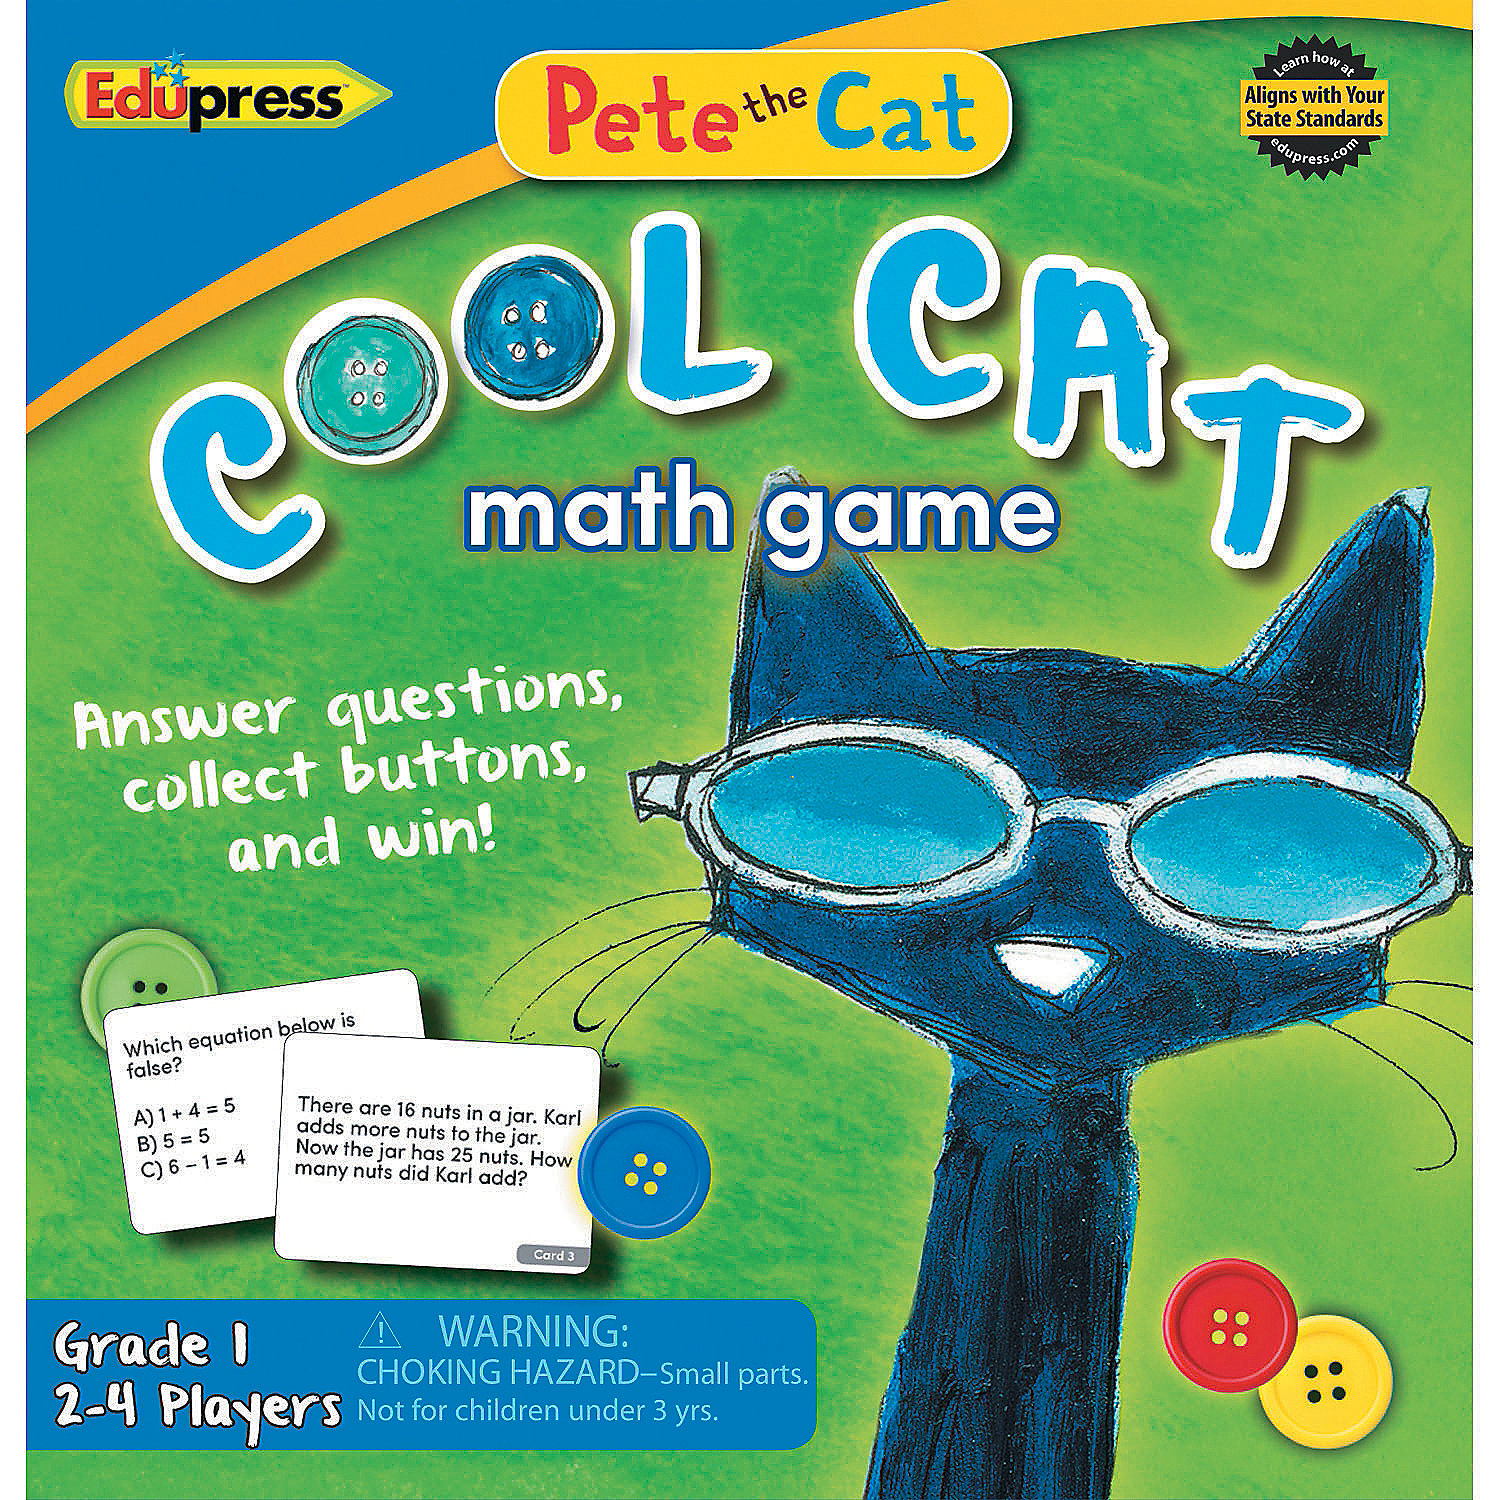 IN-13872077 Pete The Cat Cool Cat Math Game G-1 By Fun Express